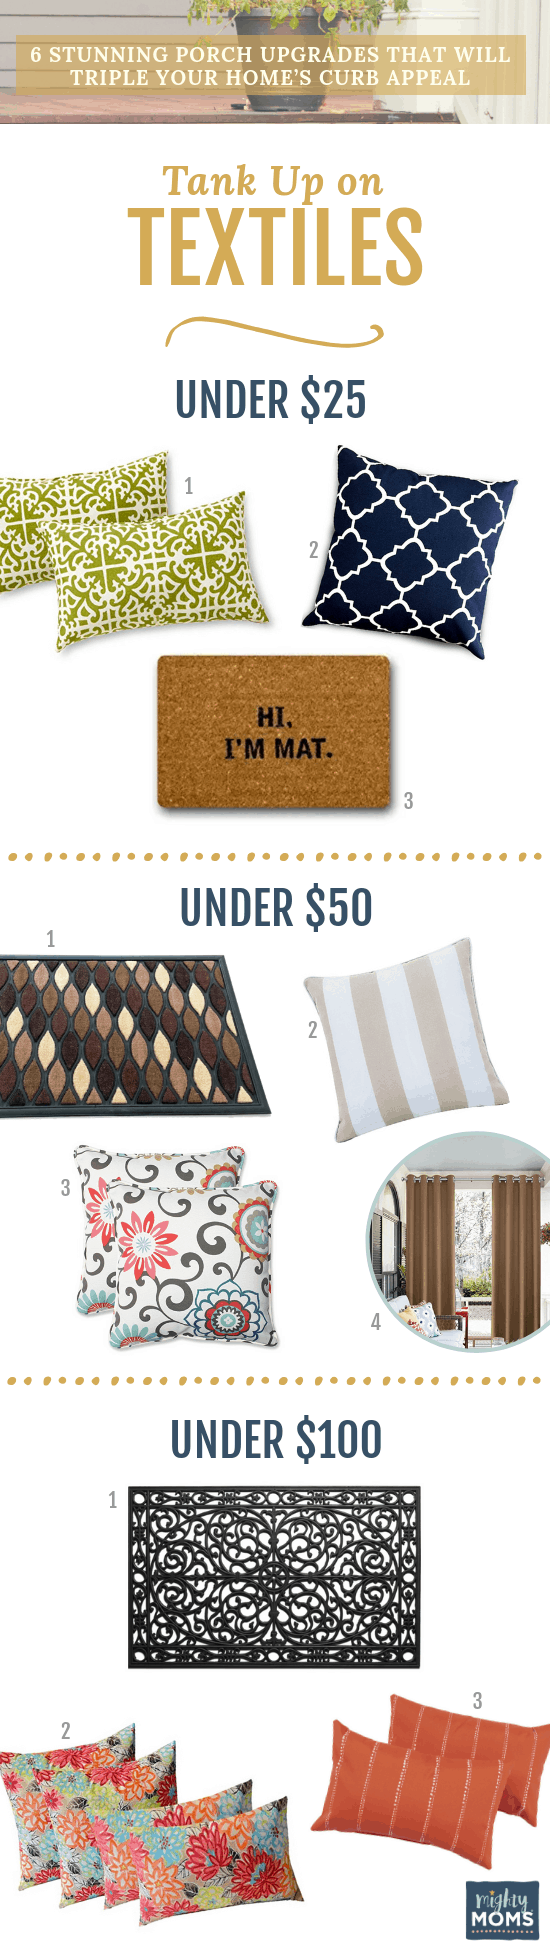 Increase Your Curb Appeal with Textiles - MightyMoms.club